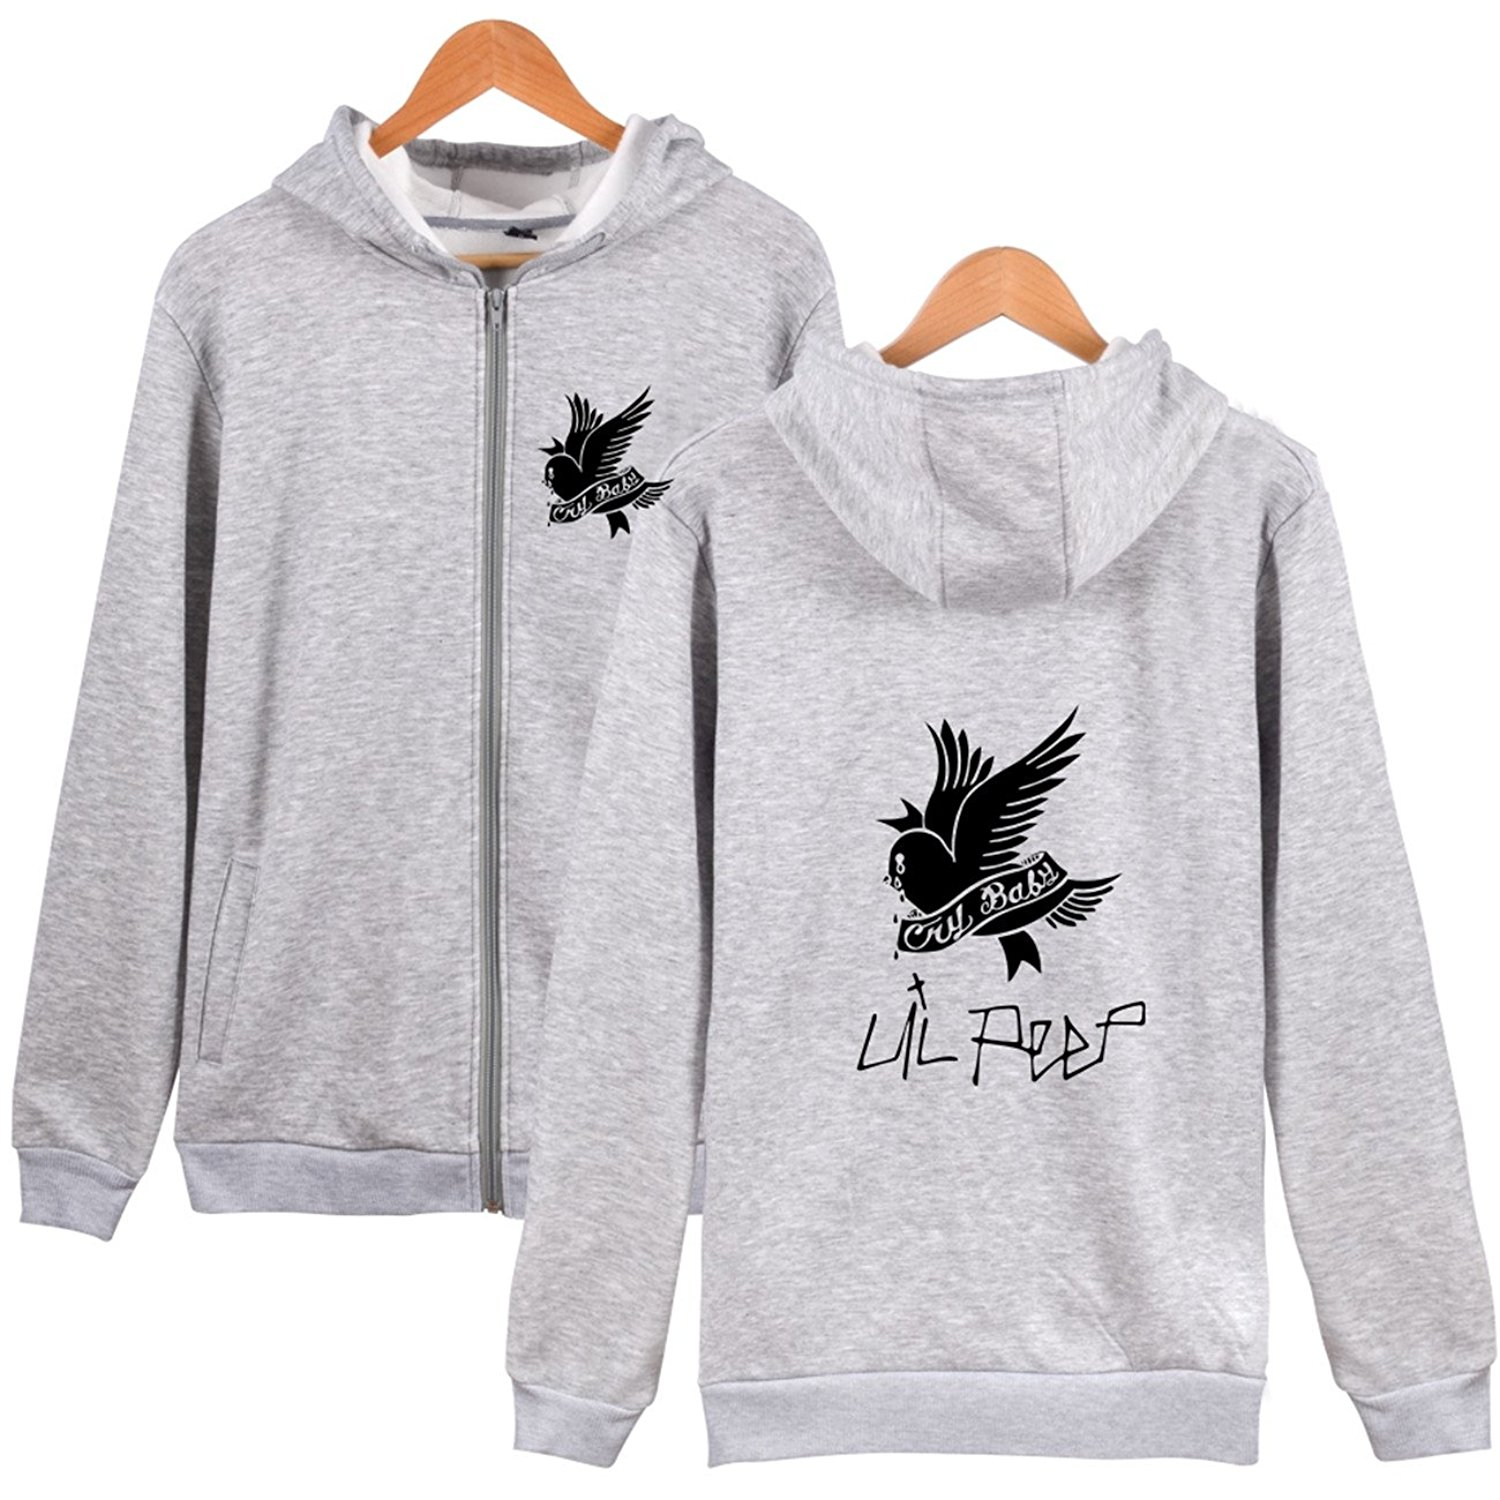 3fd085a0bbc Get Quotations · SERAPHY LIL Peep Cry Baby Unisex Hoodie Zipper  Spring Summer Mens Sweatshirts Casual Hoodie Men